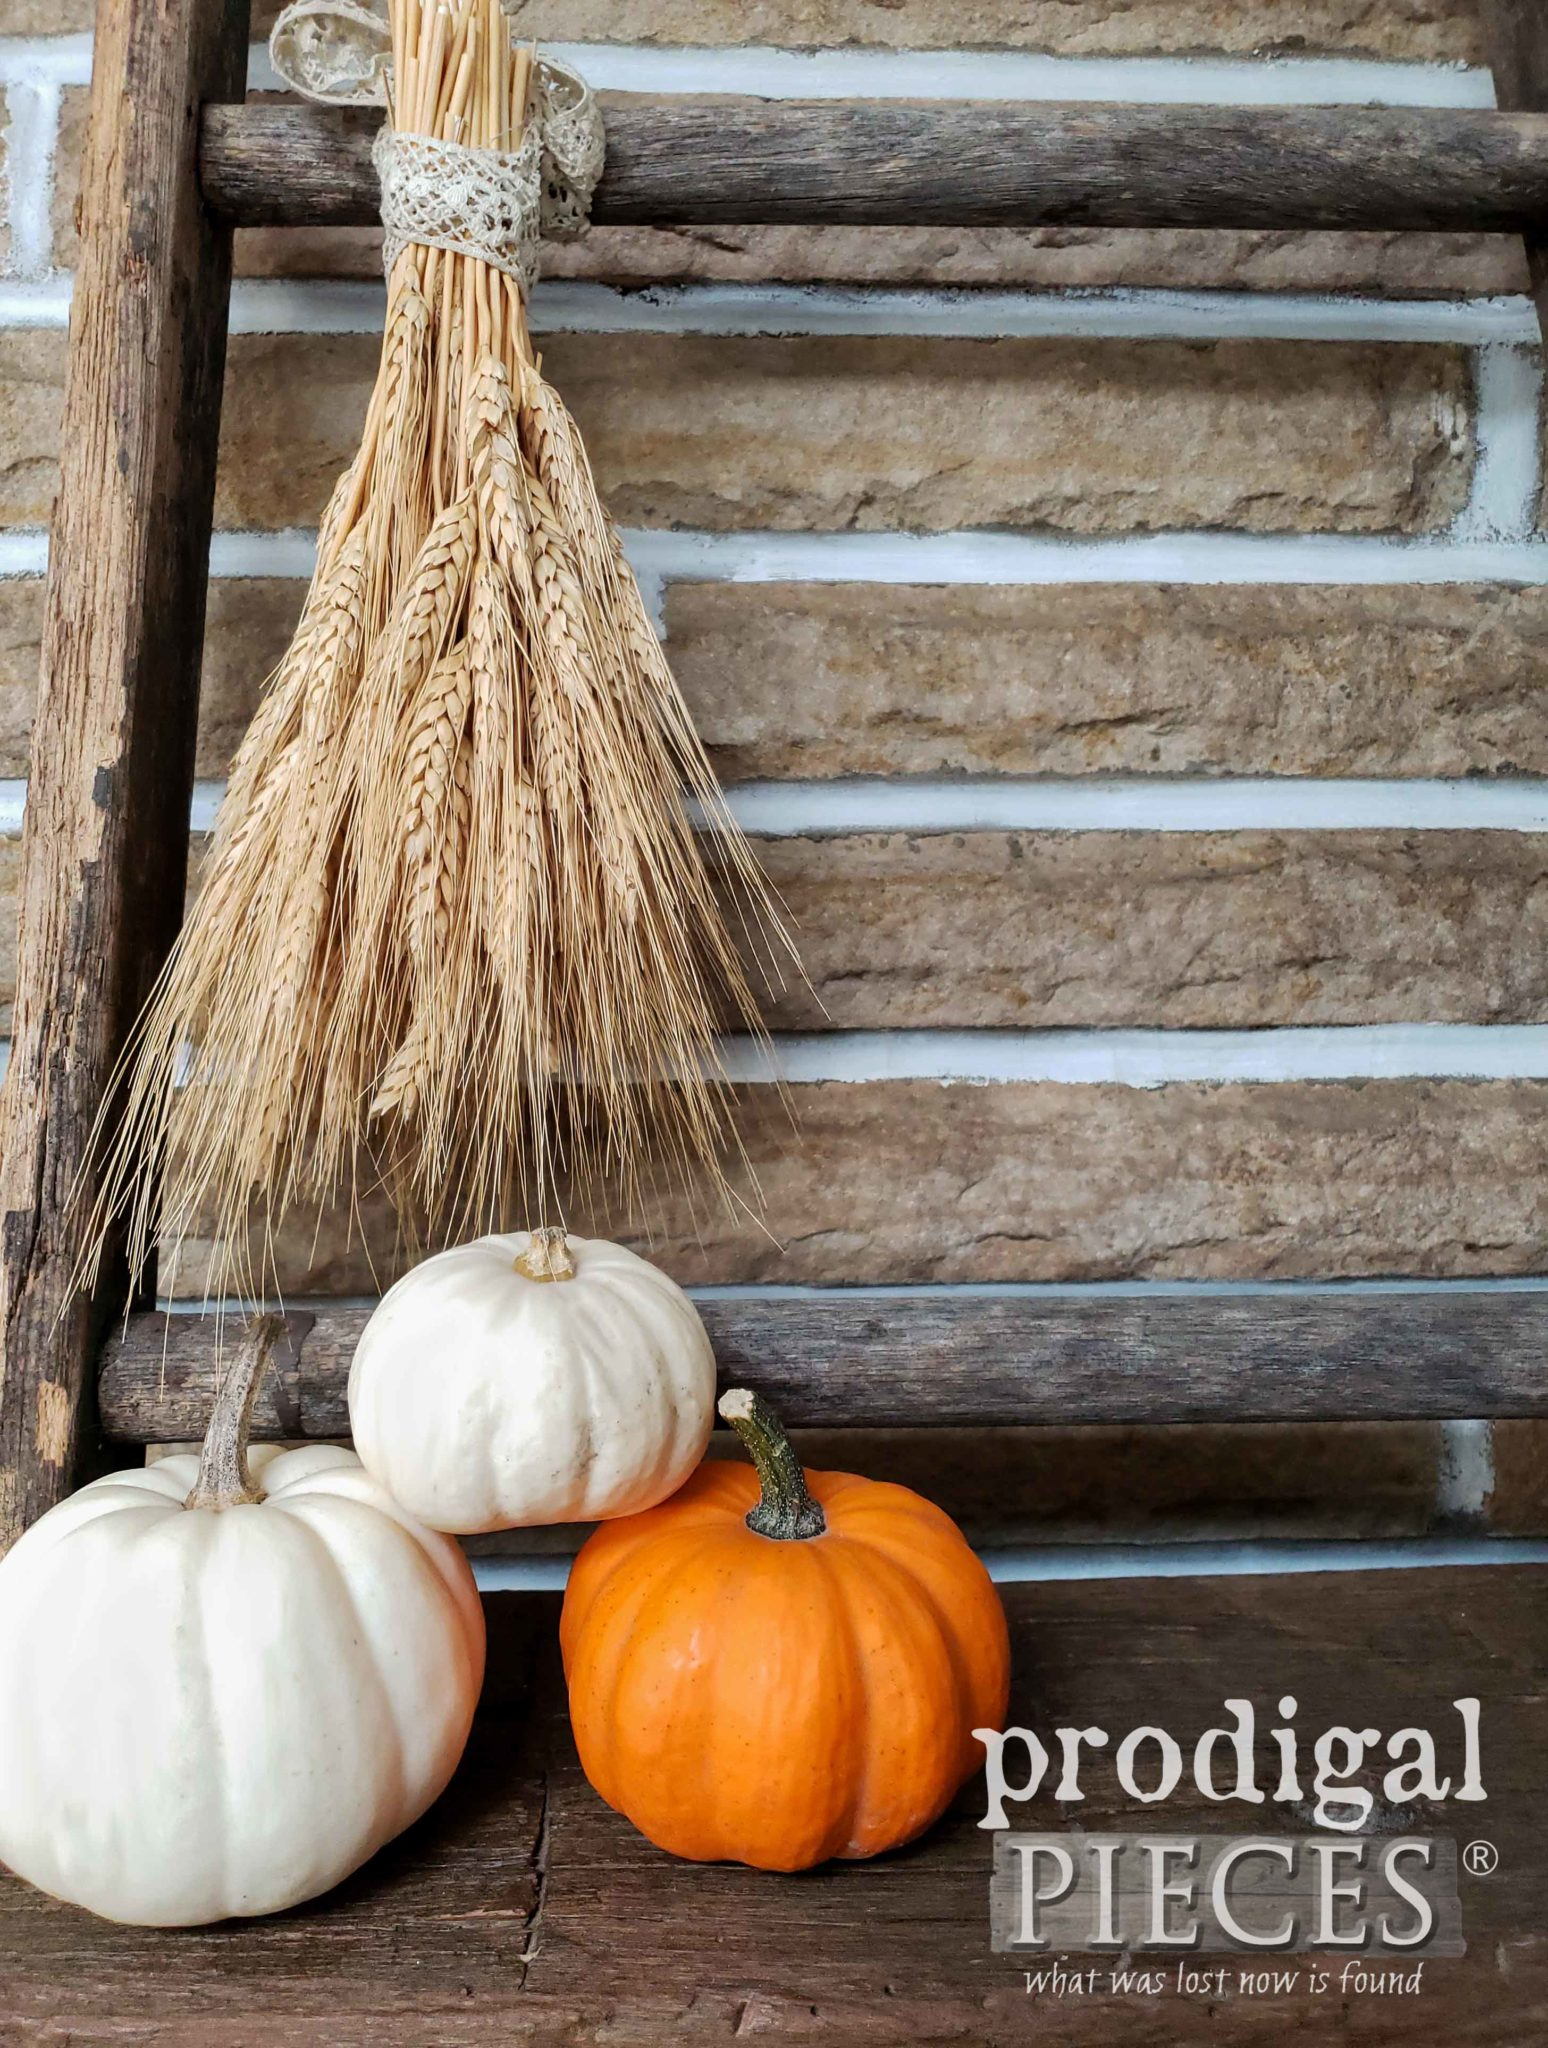 Farmhouse Fall Vignette on Mantel by Larissa of Prodigal Pieces | prodigalpieces.com